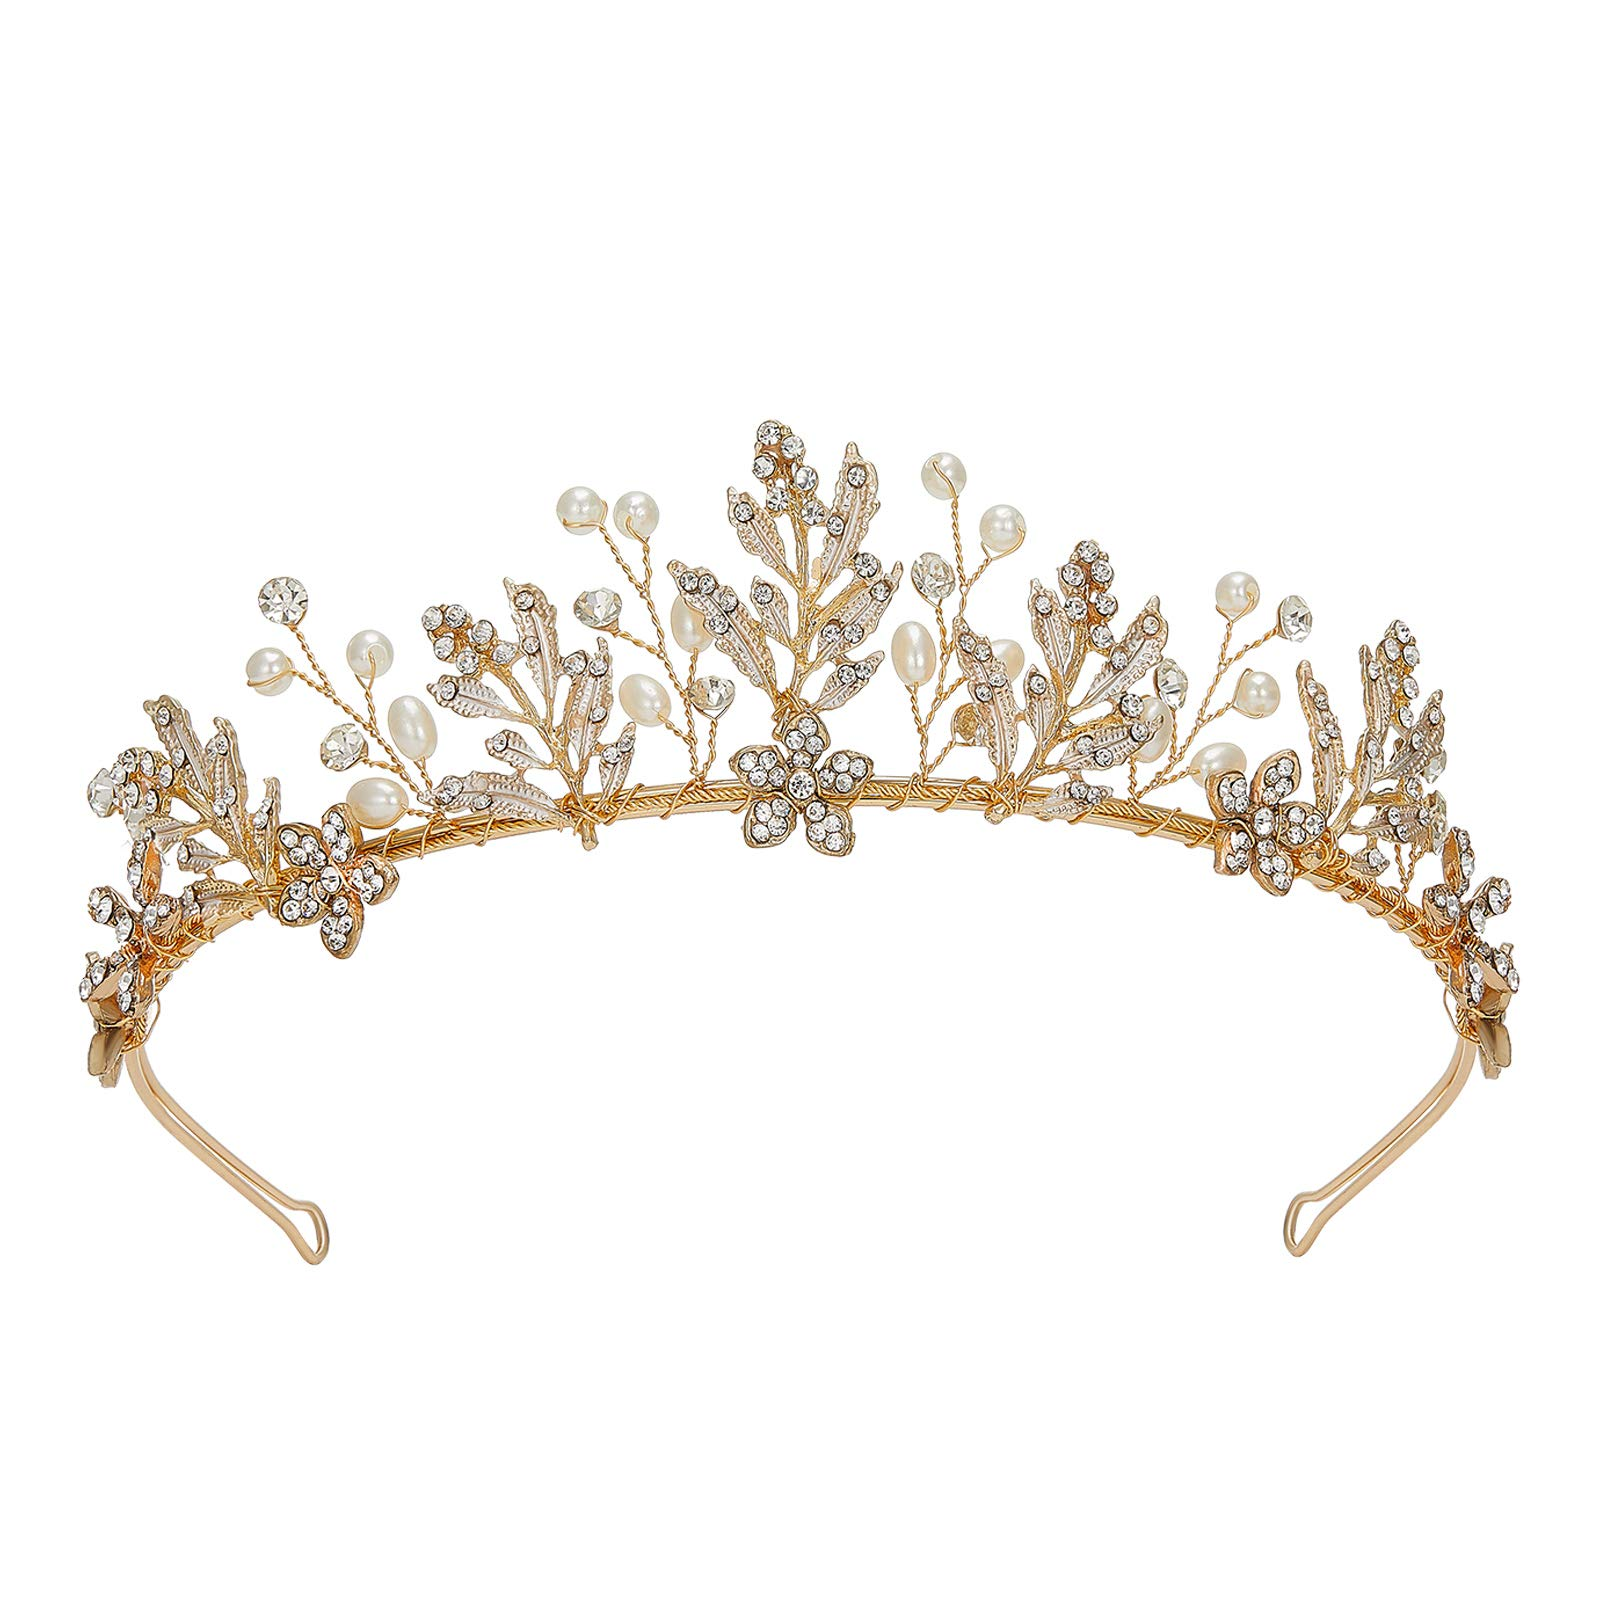 SWEETV Handcrafted Wedding Tiara for Bride, Gold Tiaras and Crowns for Women, Bridal Headband Hair Accessories, Metal Birthday Quinceanera Pageant Prom Headpieces